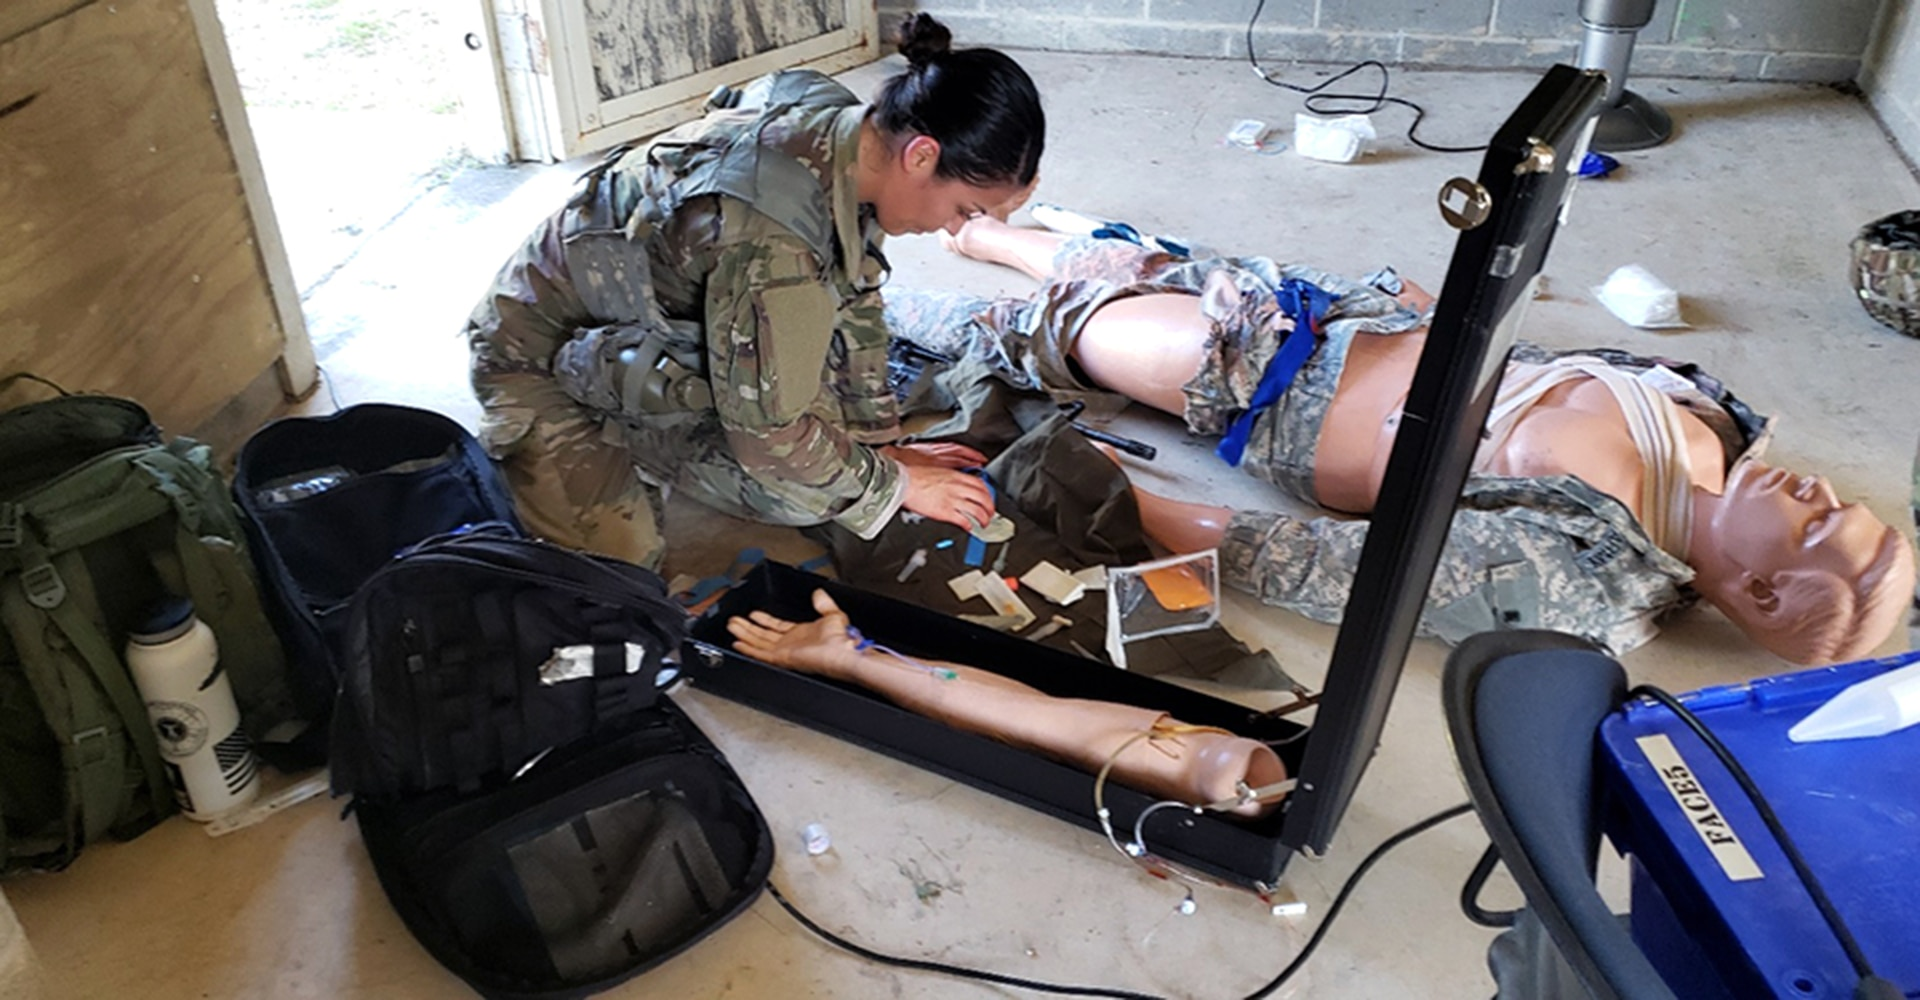 Army Sgt. Samantha Delgado assesses a patient during the medical lane portion of the Brooke Army Medical Center Best Medic Competition at Joint Base San Antonio-Camp Bullis June 12. The Soldiers competed in several warrior and medical tasks during the grueling competition.